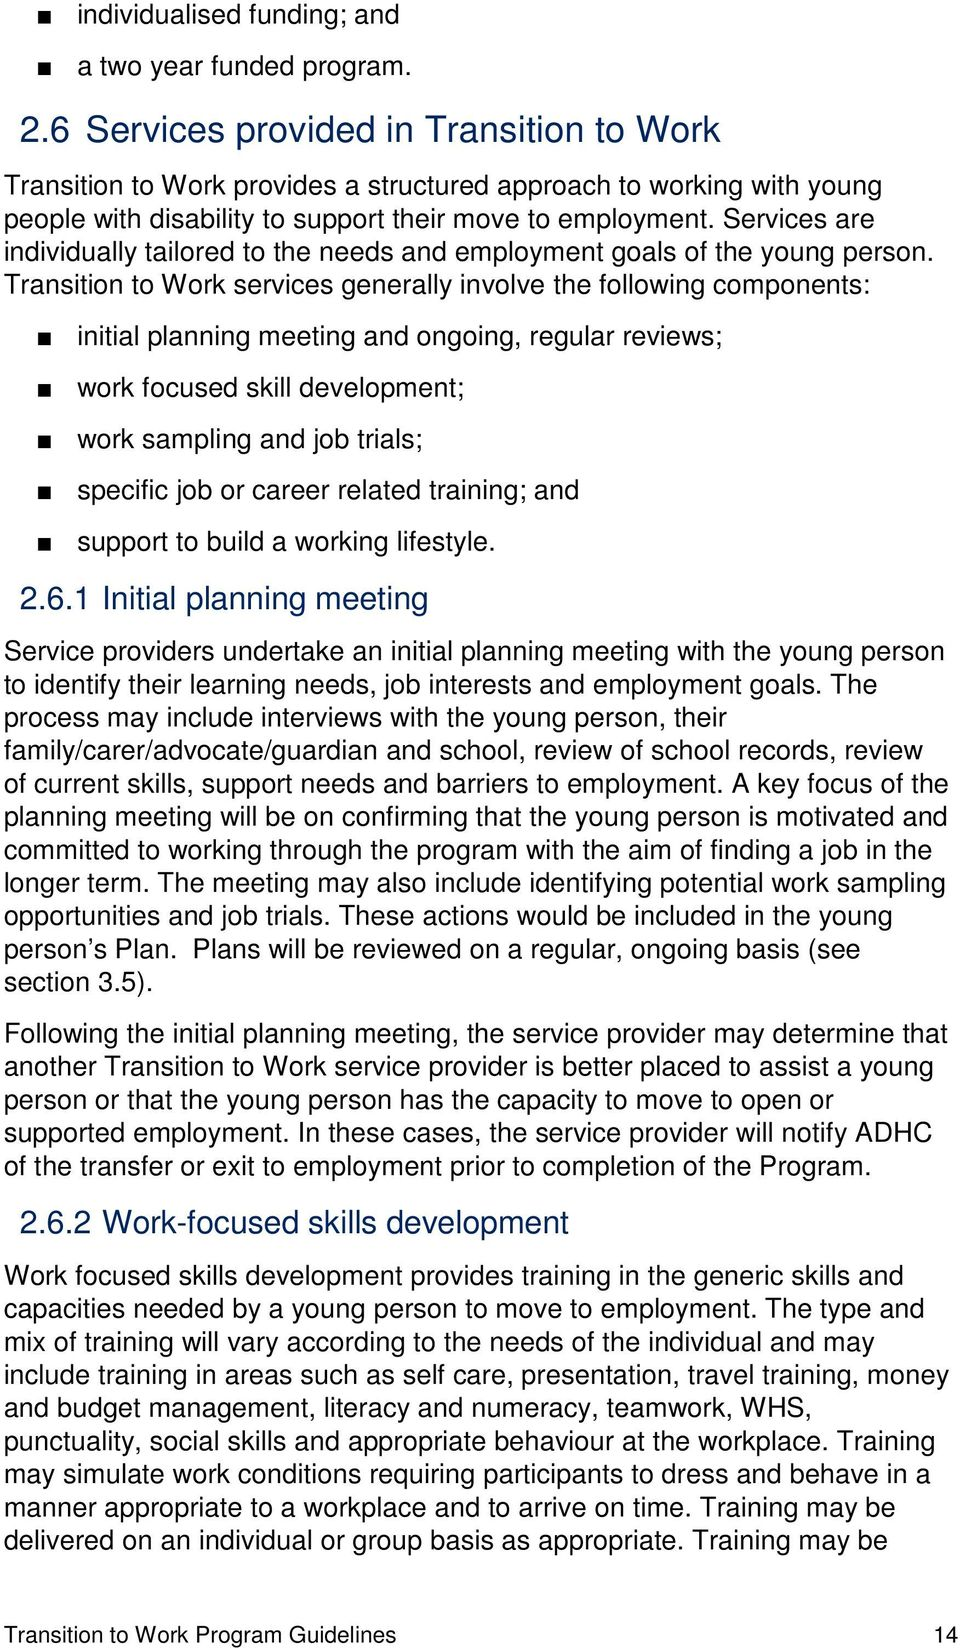 Services are individually tailored to the needs and employment goals of the young person.